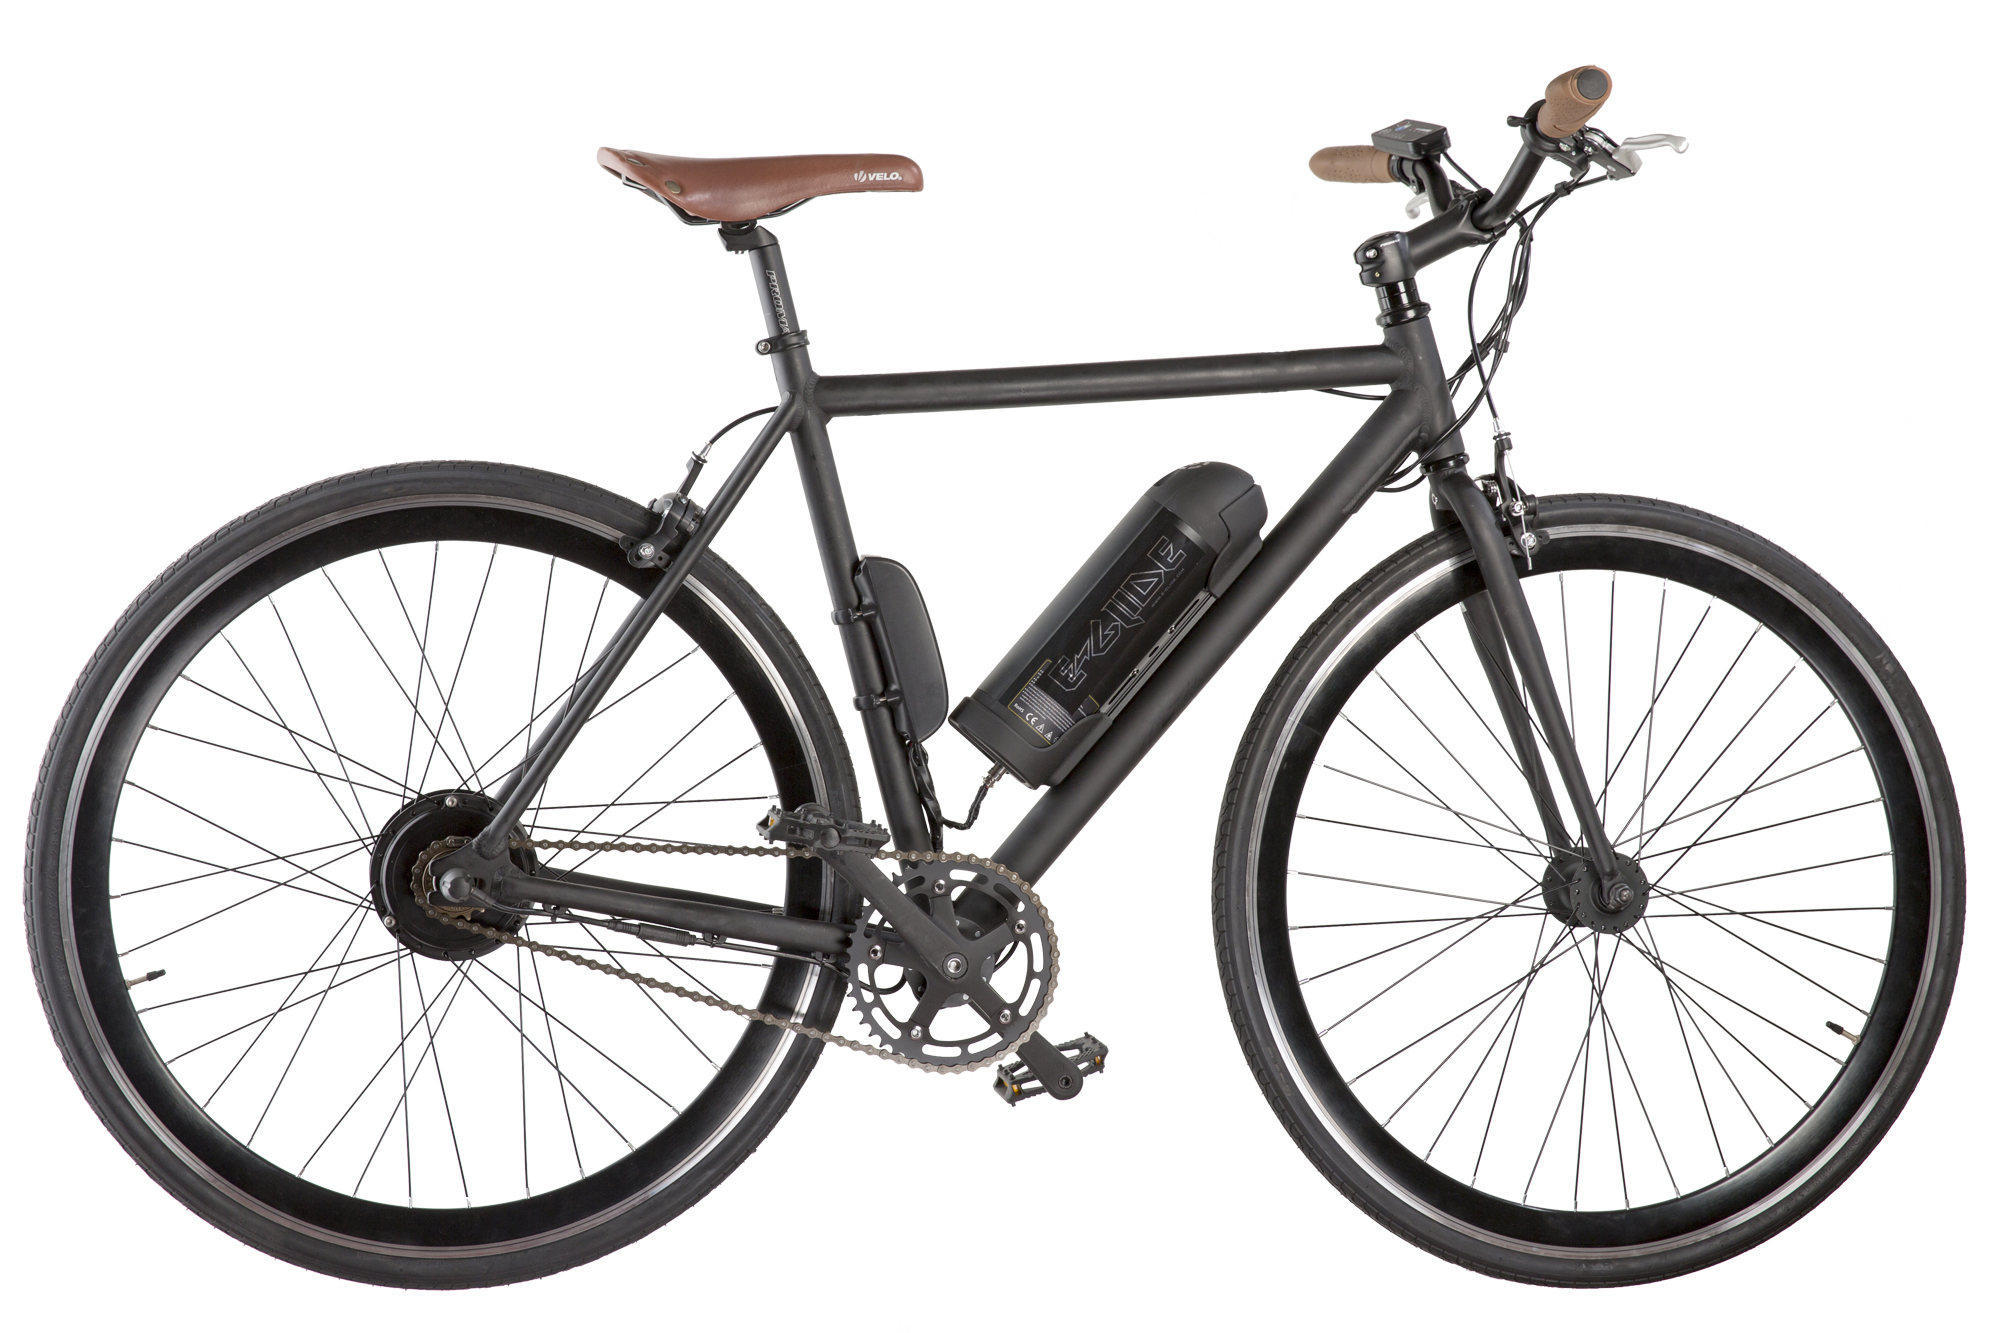 E Glide A Santa Monica Electric Bike And Powerboard Manufacturer Redefines The Affordable